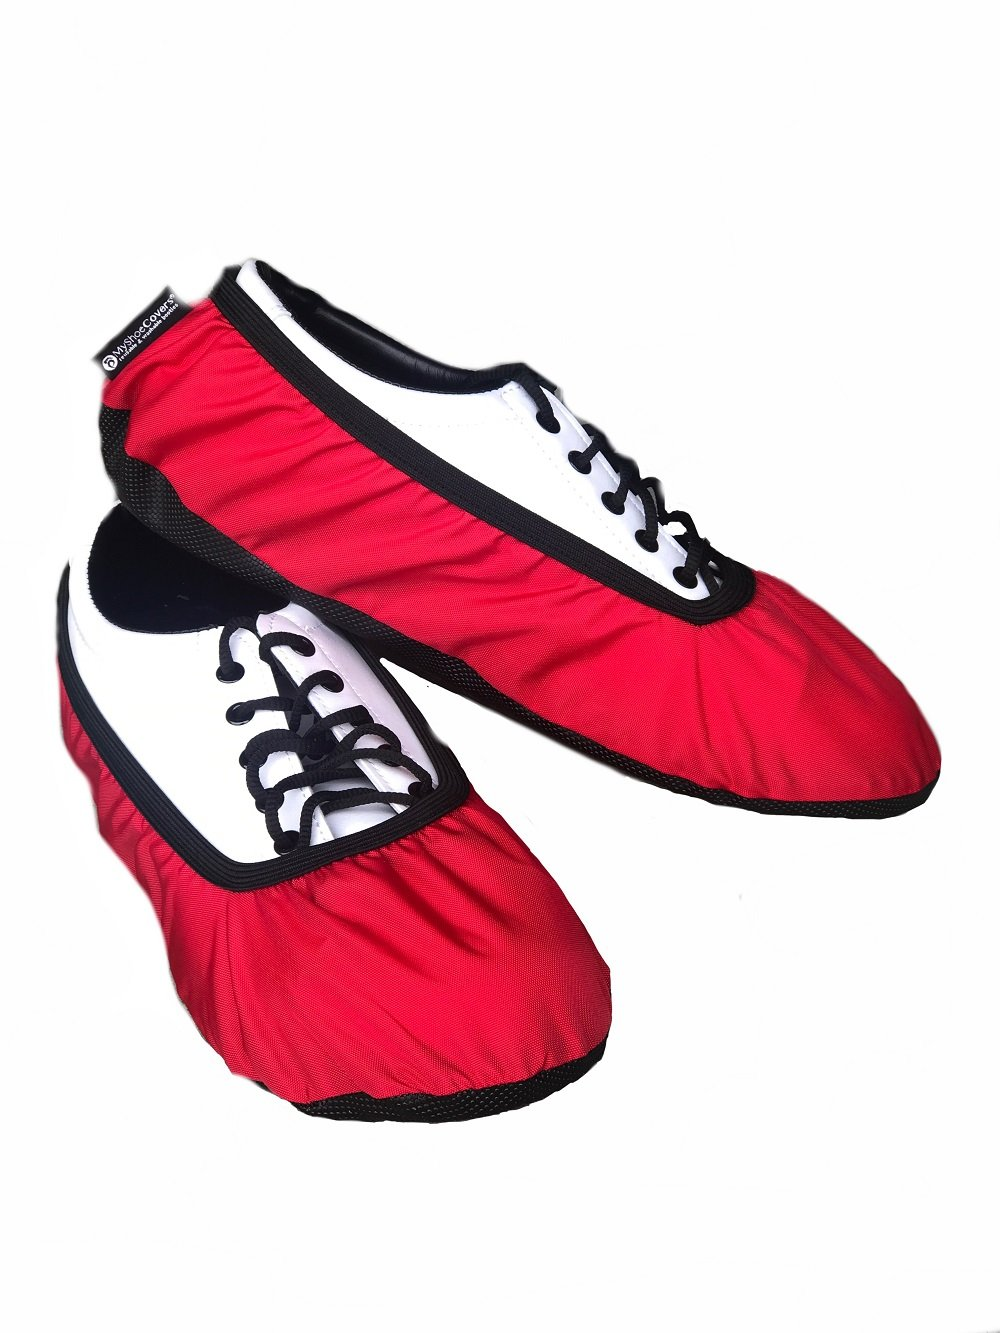 MyShoeCovers Premium Bowling Shoe Covers - Pair | Durable Quality Construction | Red - Medium